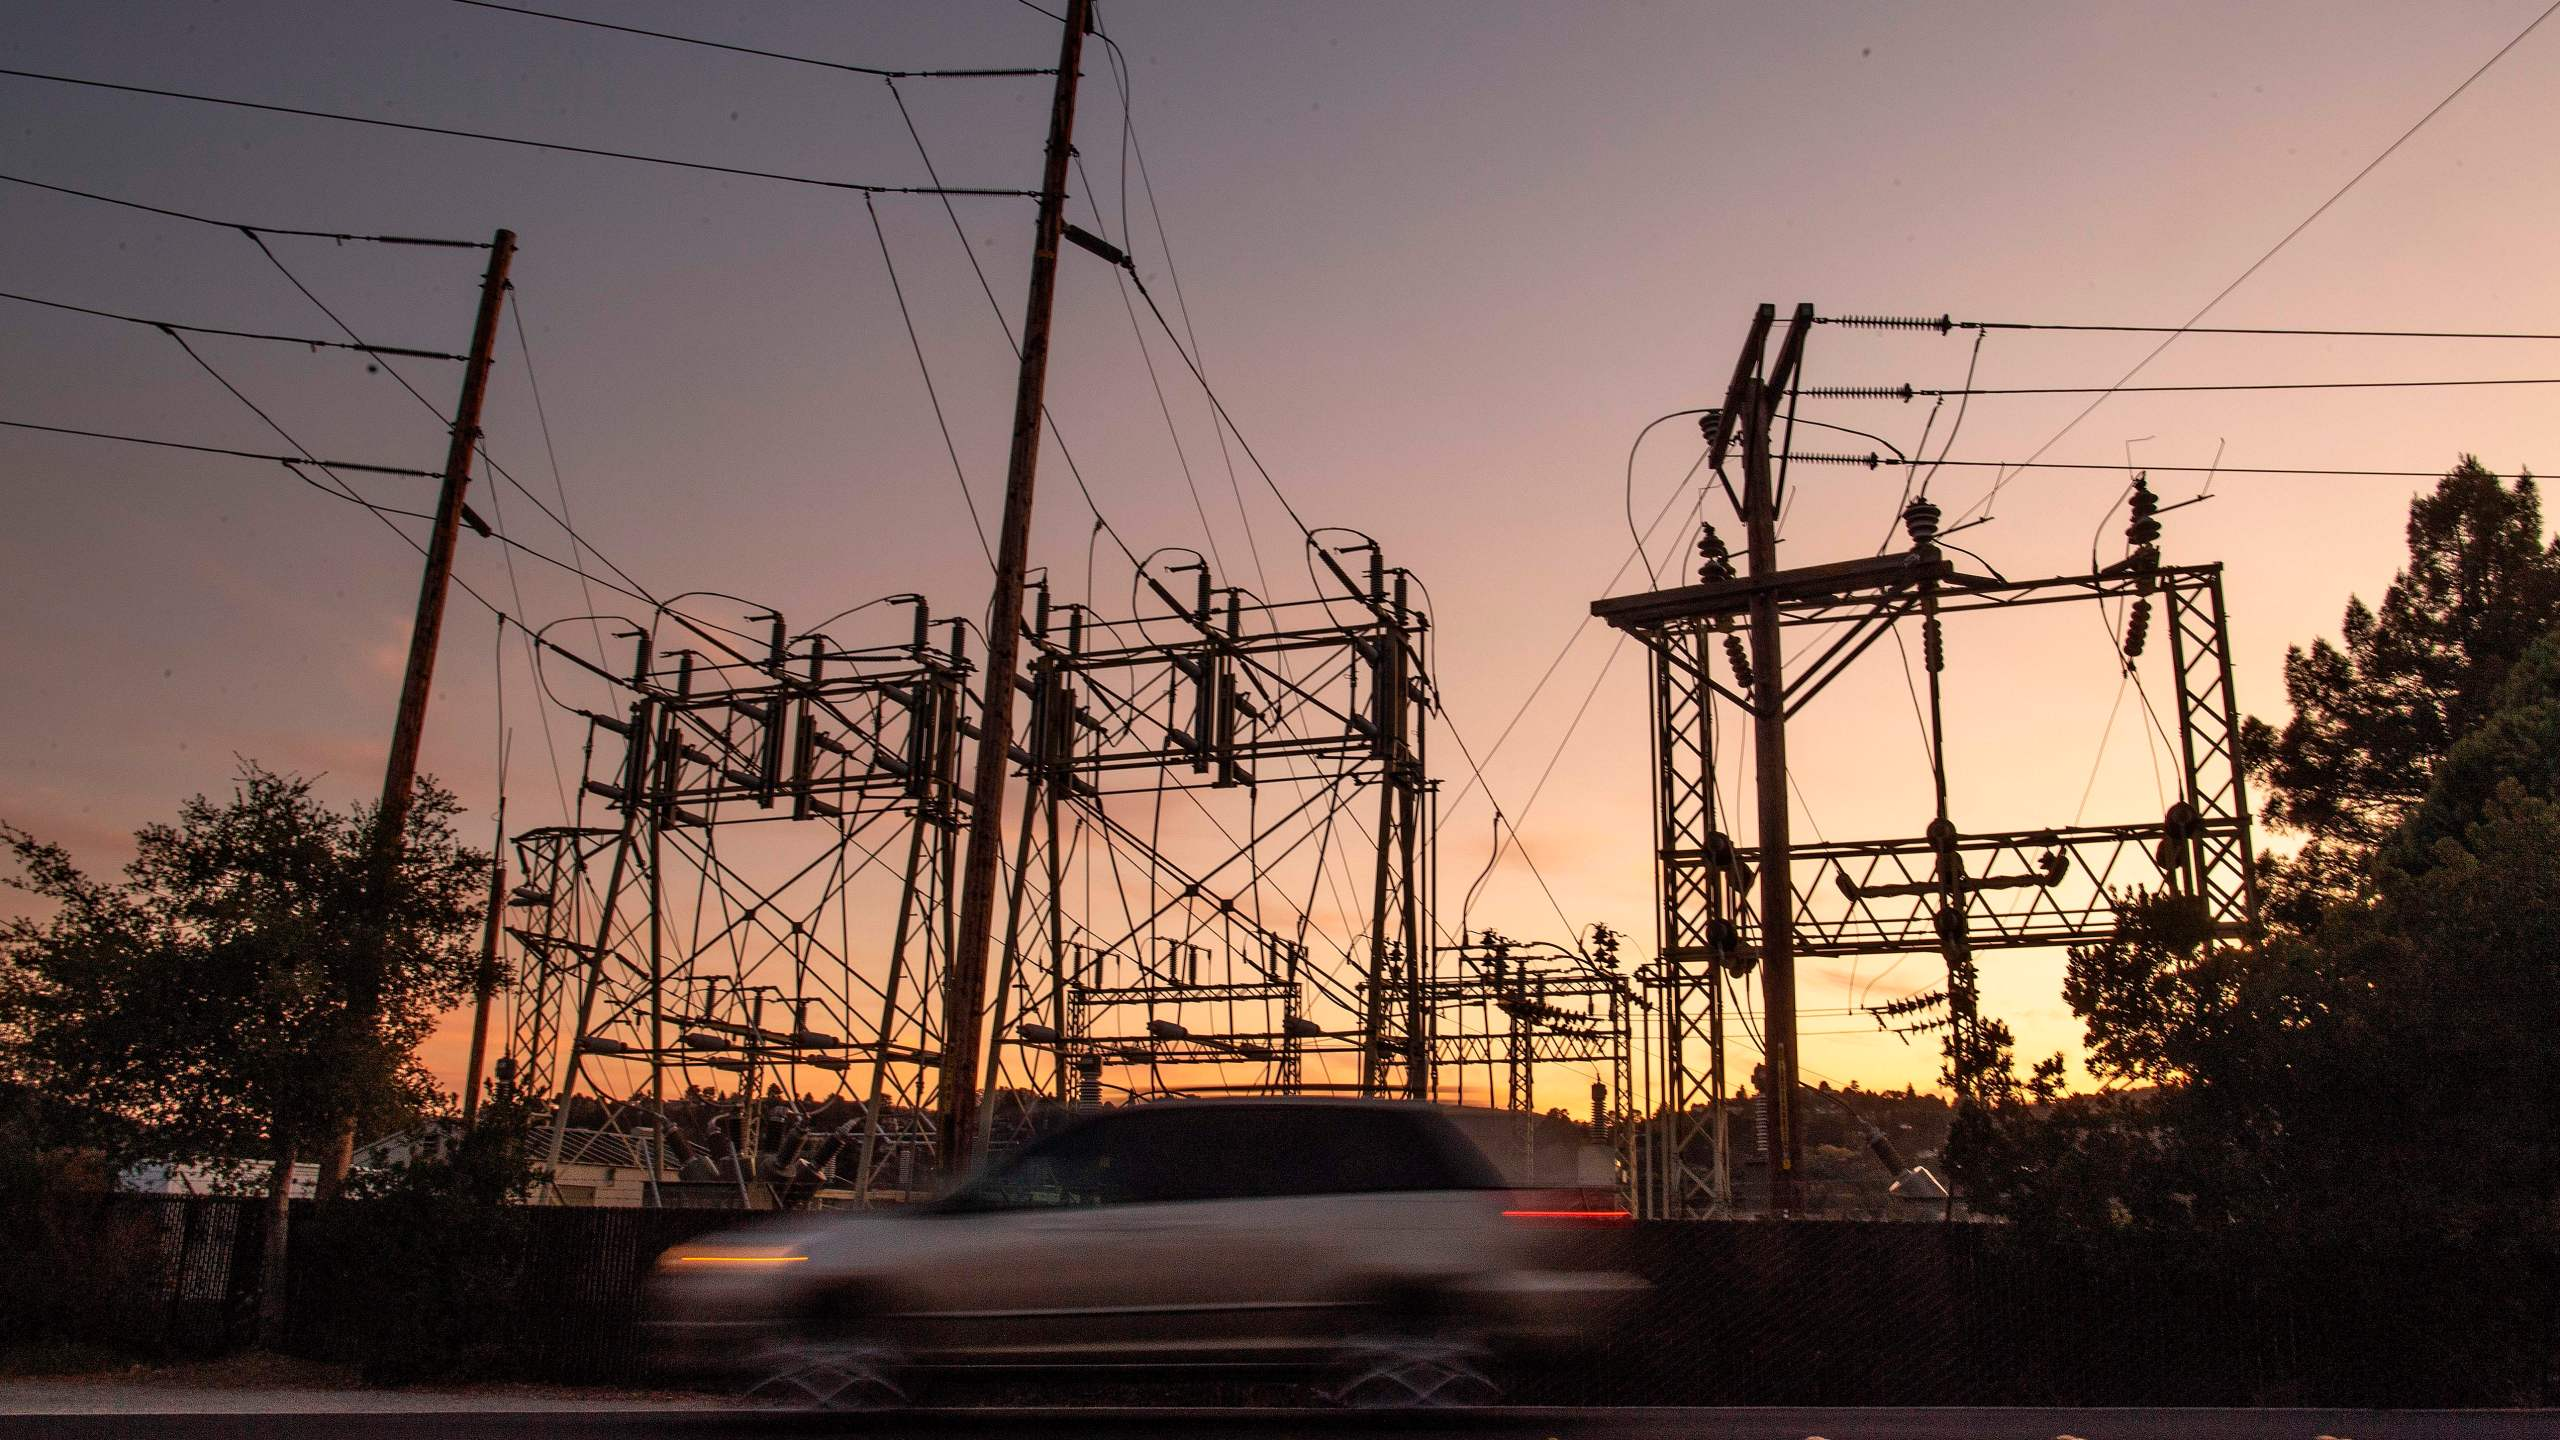 A car drives passed a power station in Mill Valley, Calif., as a blackout continues on Oct., 10, 2019. More than a million Californians were without electricity due to pre-emptive blackouts to prevent wildfires. (JOSH EDELSON/AFP via Getty Images)